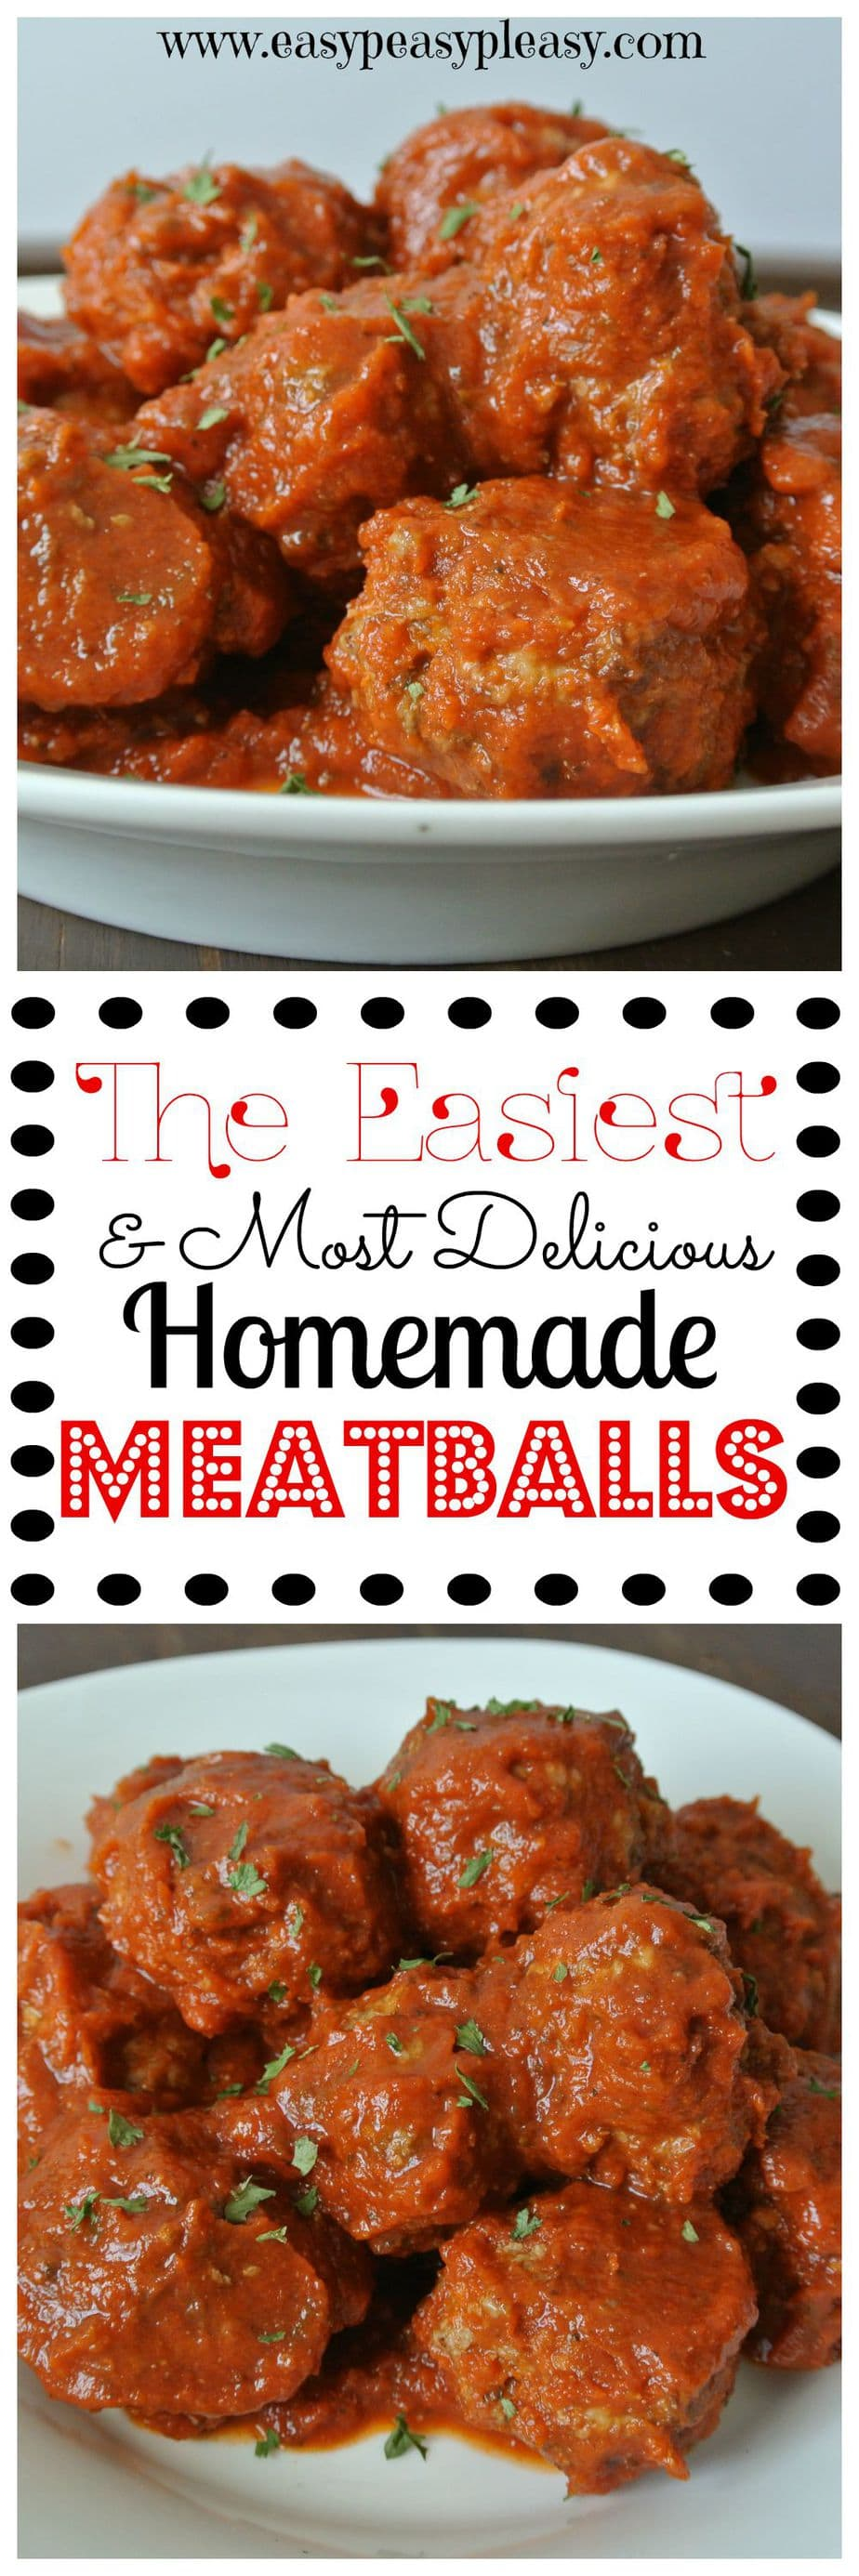 The easiest homemade meatballs that anyone can make! Did I mention...they are delicious and kid approved!